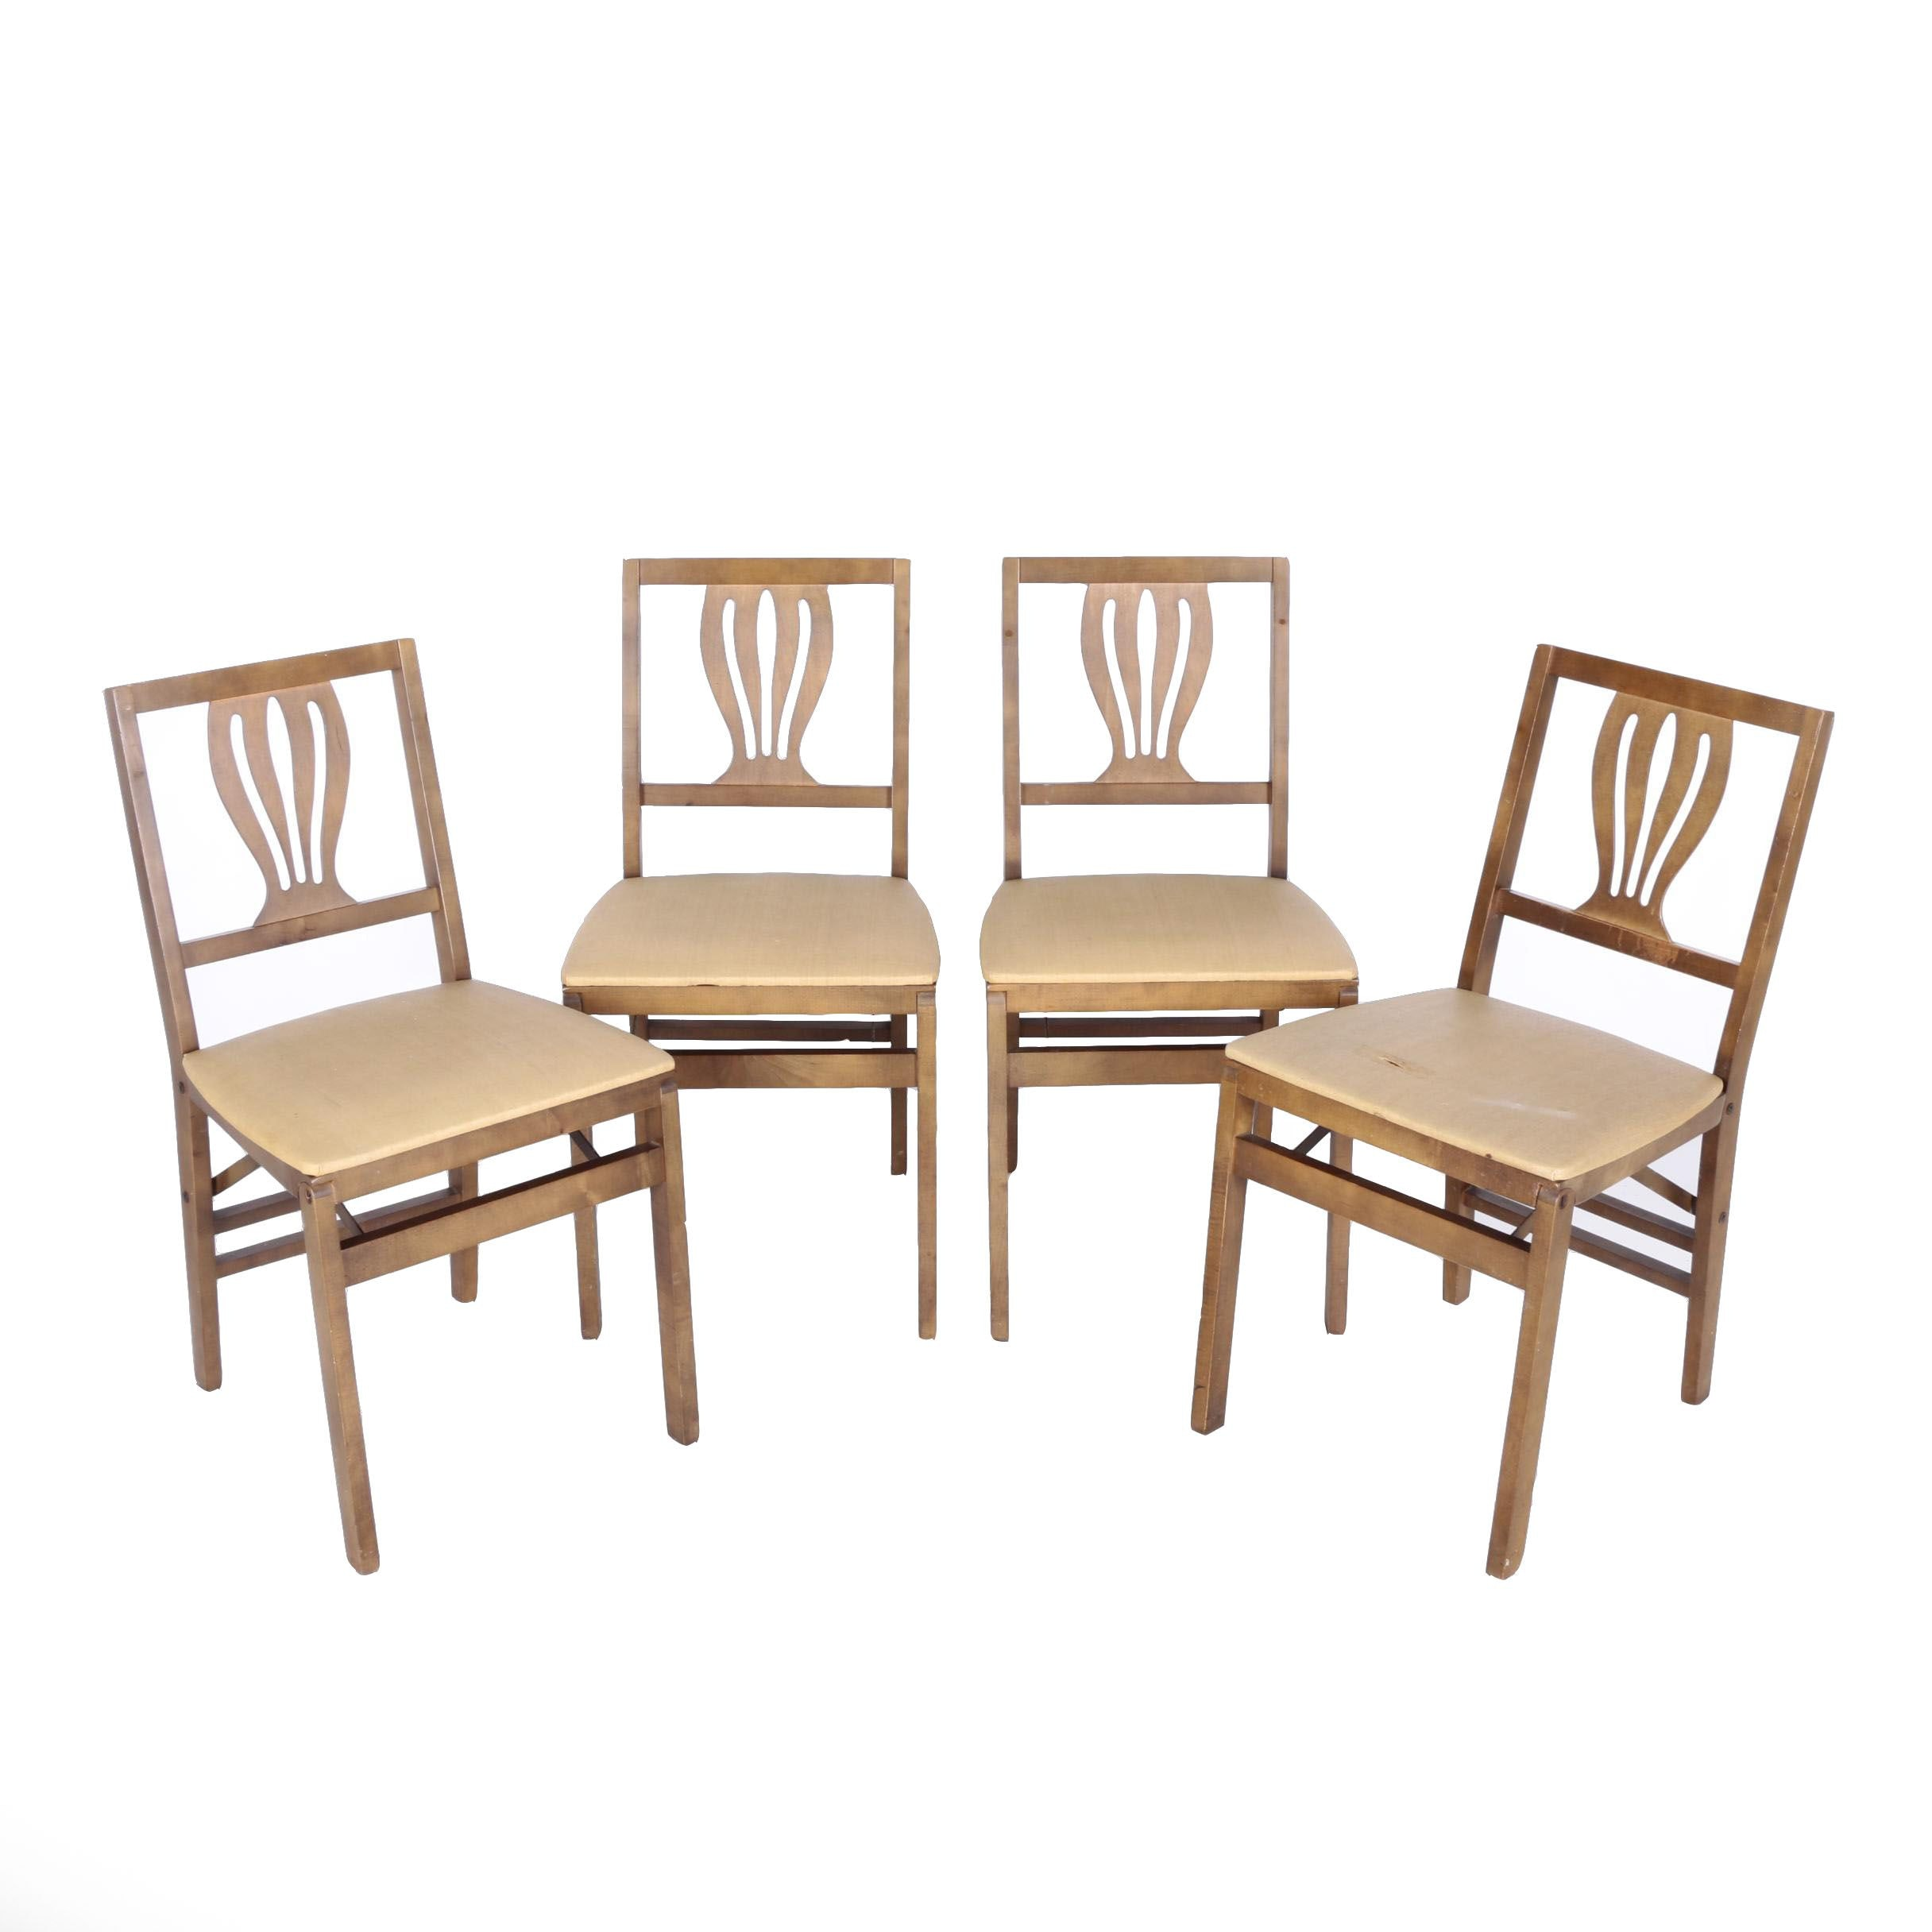 Vintage Art Deco Style Folding Chairs By Stakmore Co Ebth